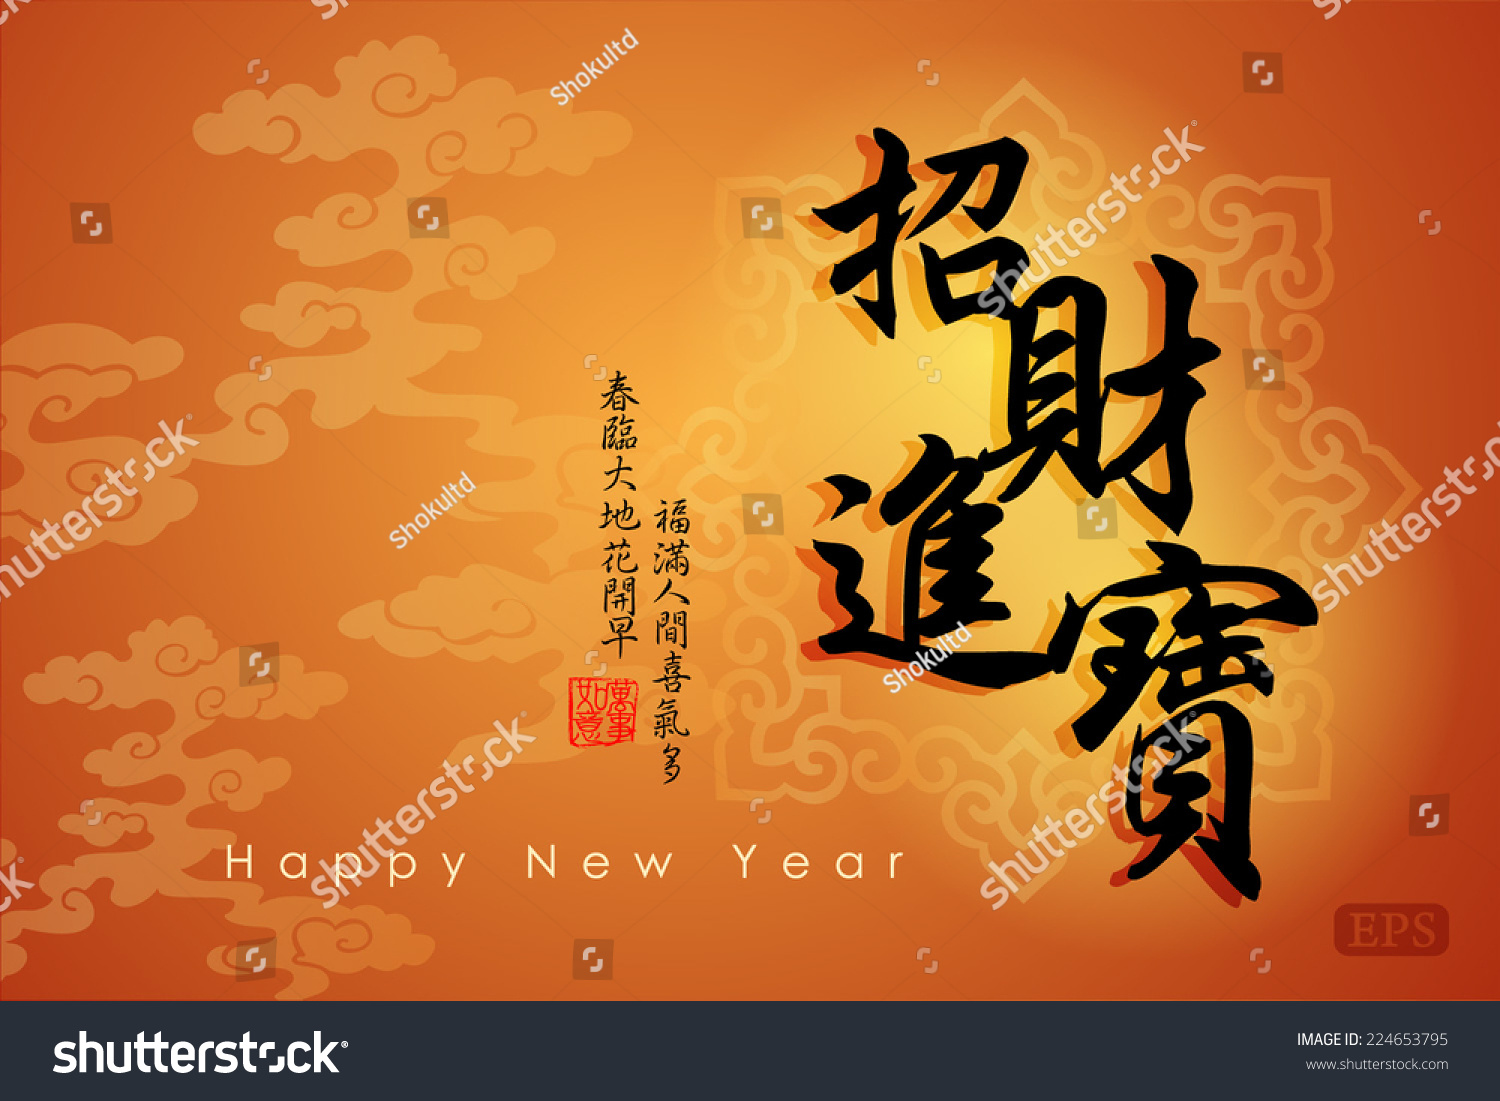 Chinese new year greeting card design translation stock vector chinese new year greeting card designanslation may wealth and riches be drawn your m4hsunfo